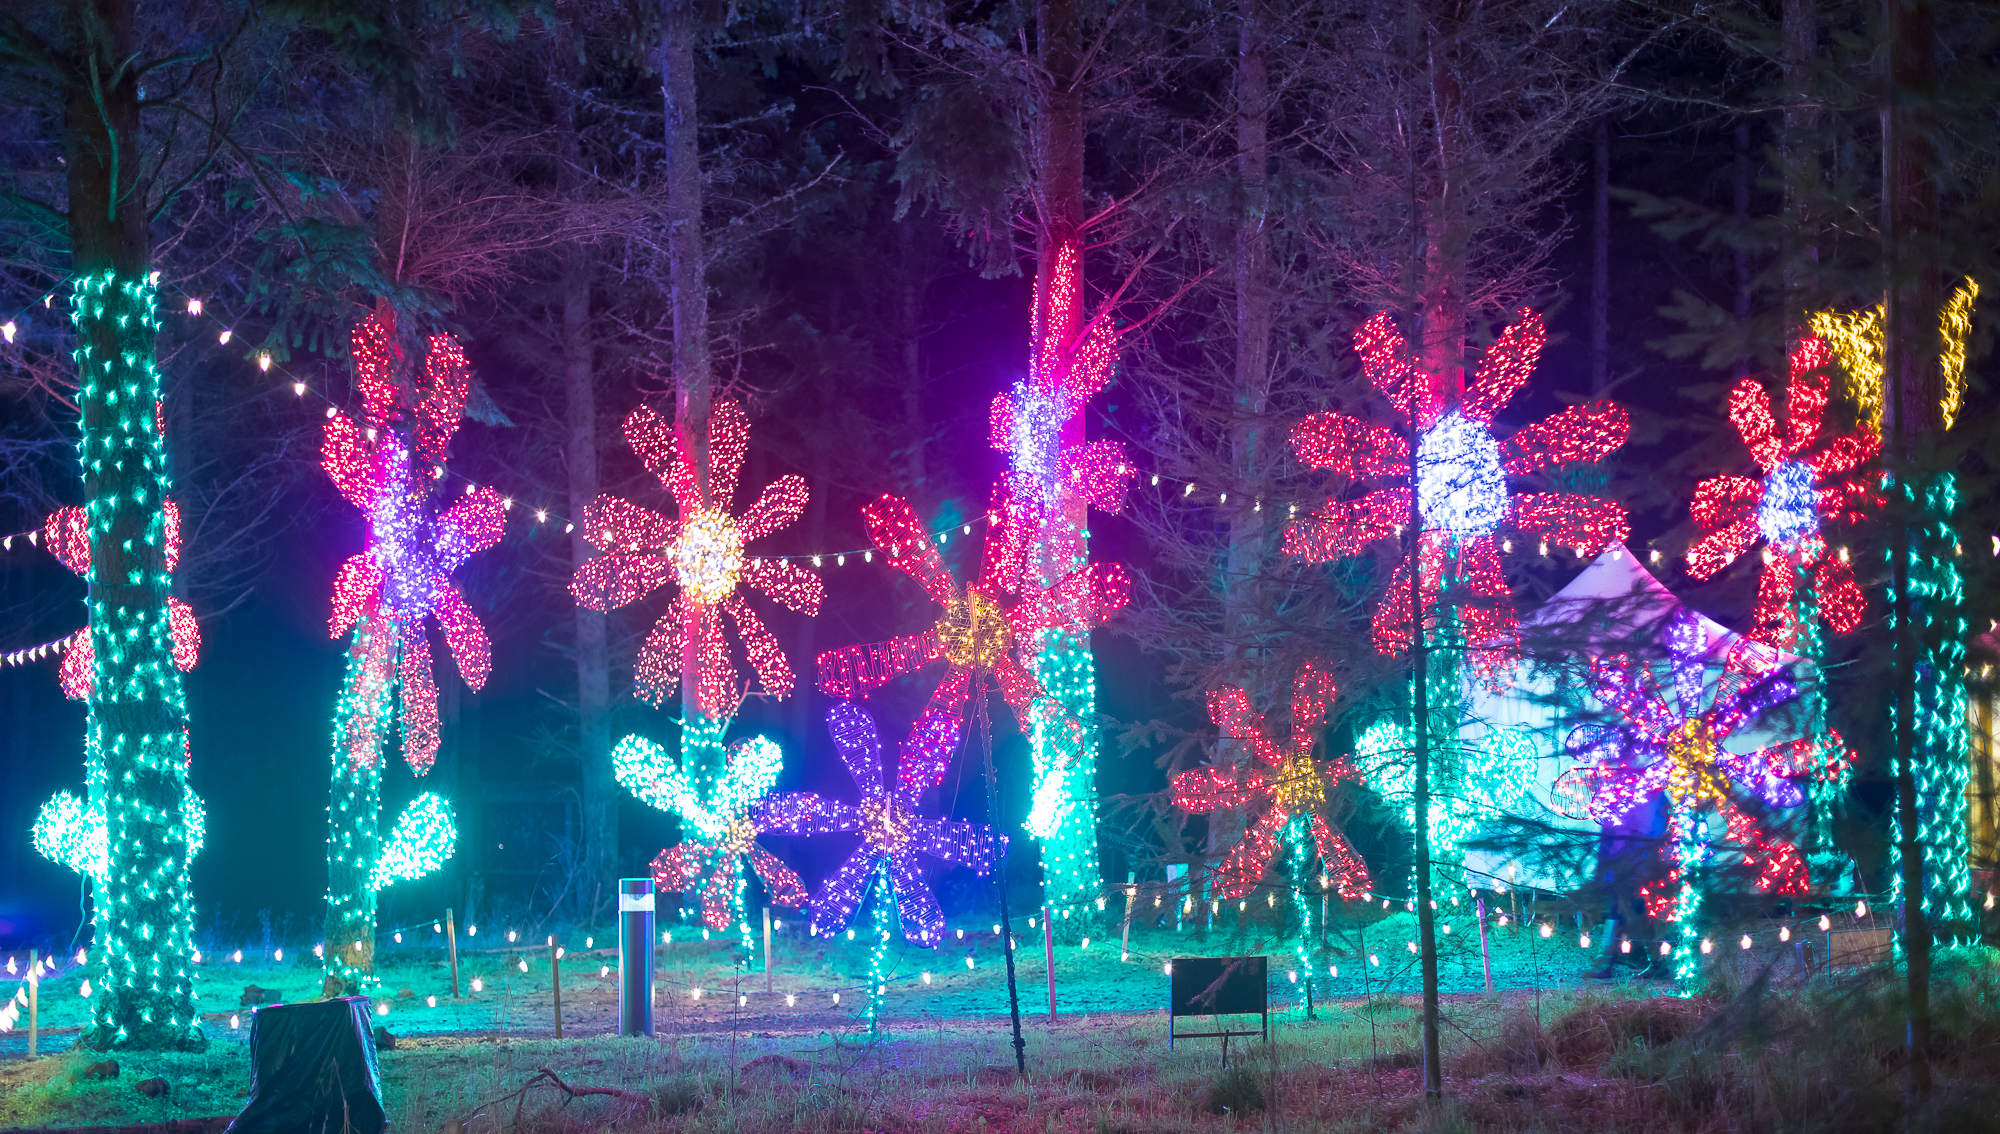 xmas light show of flowers